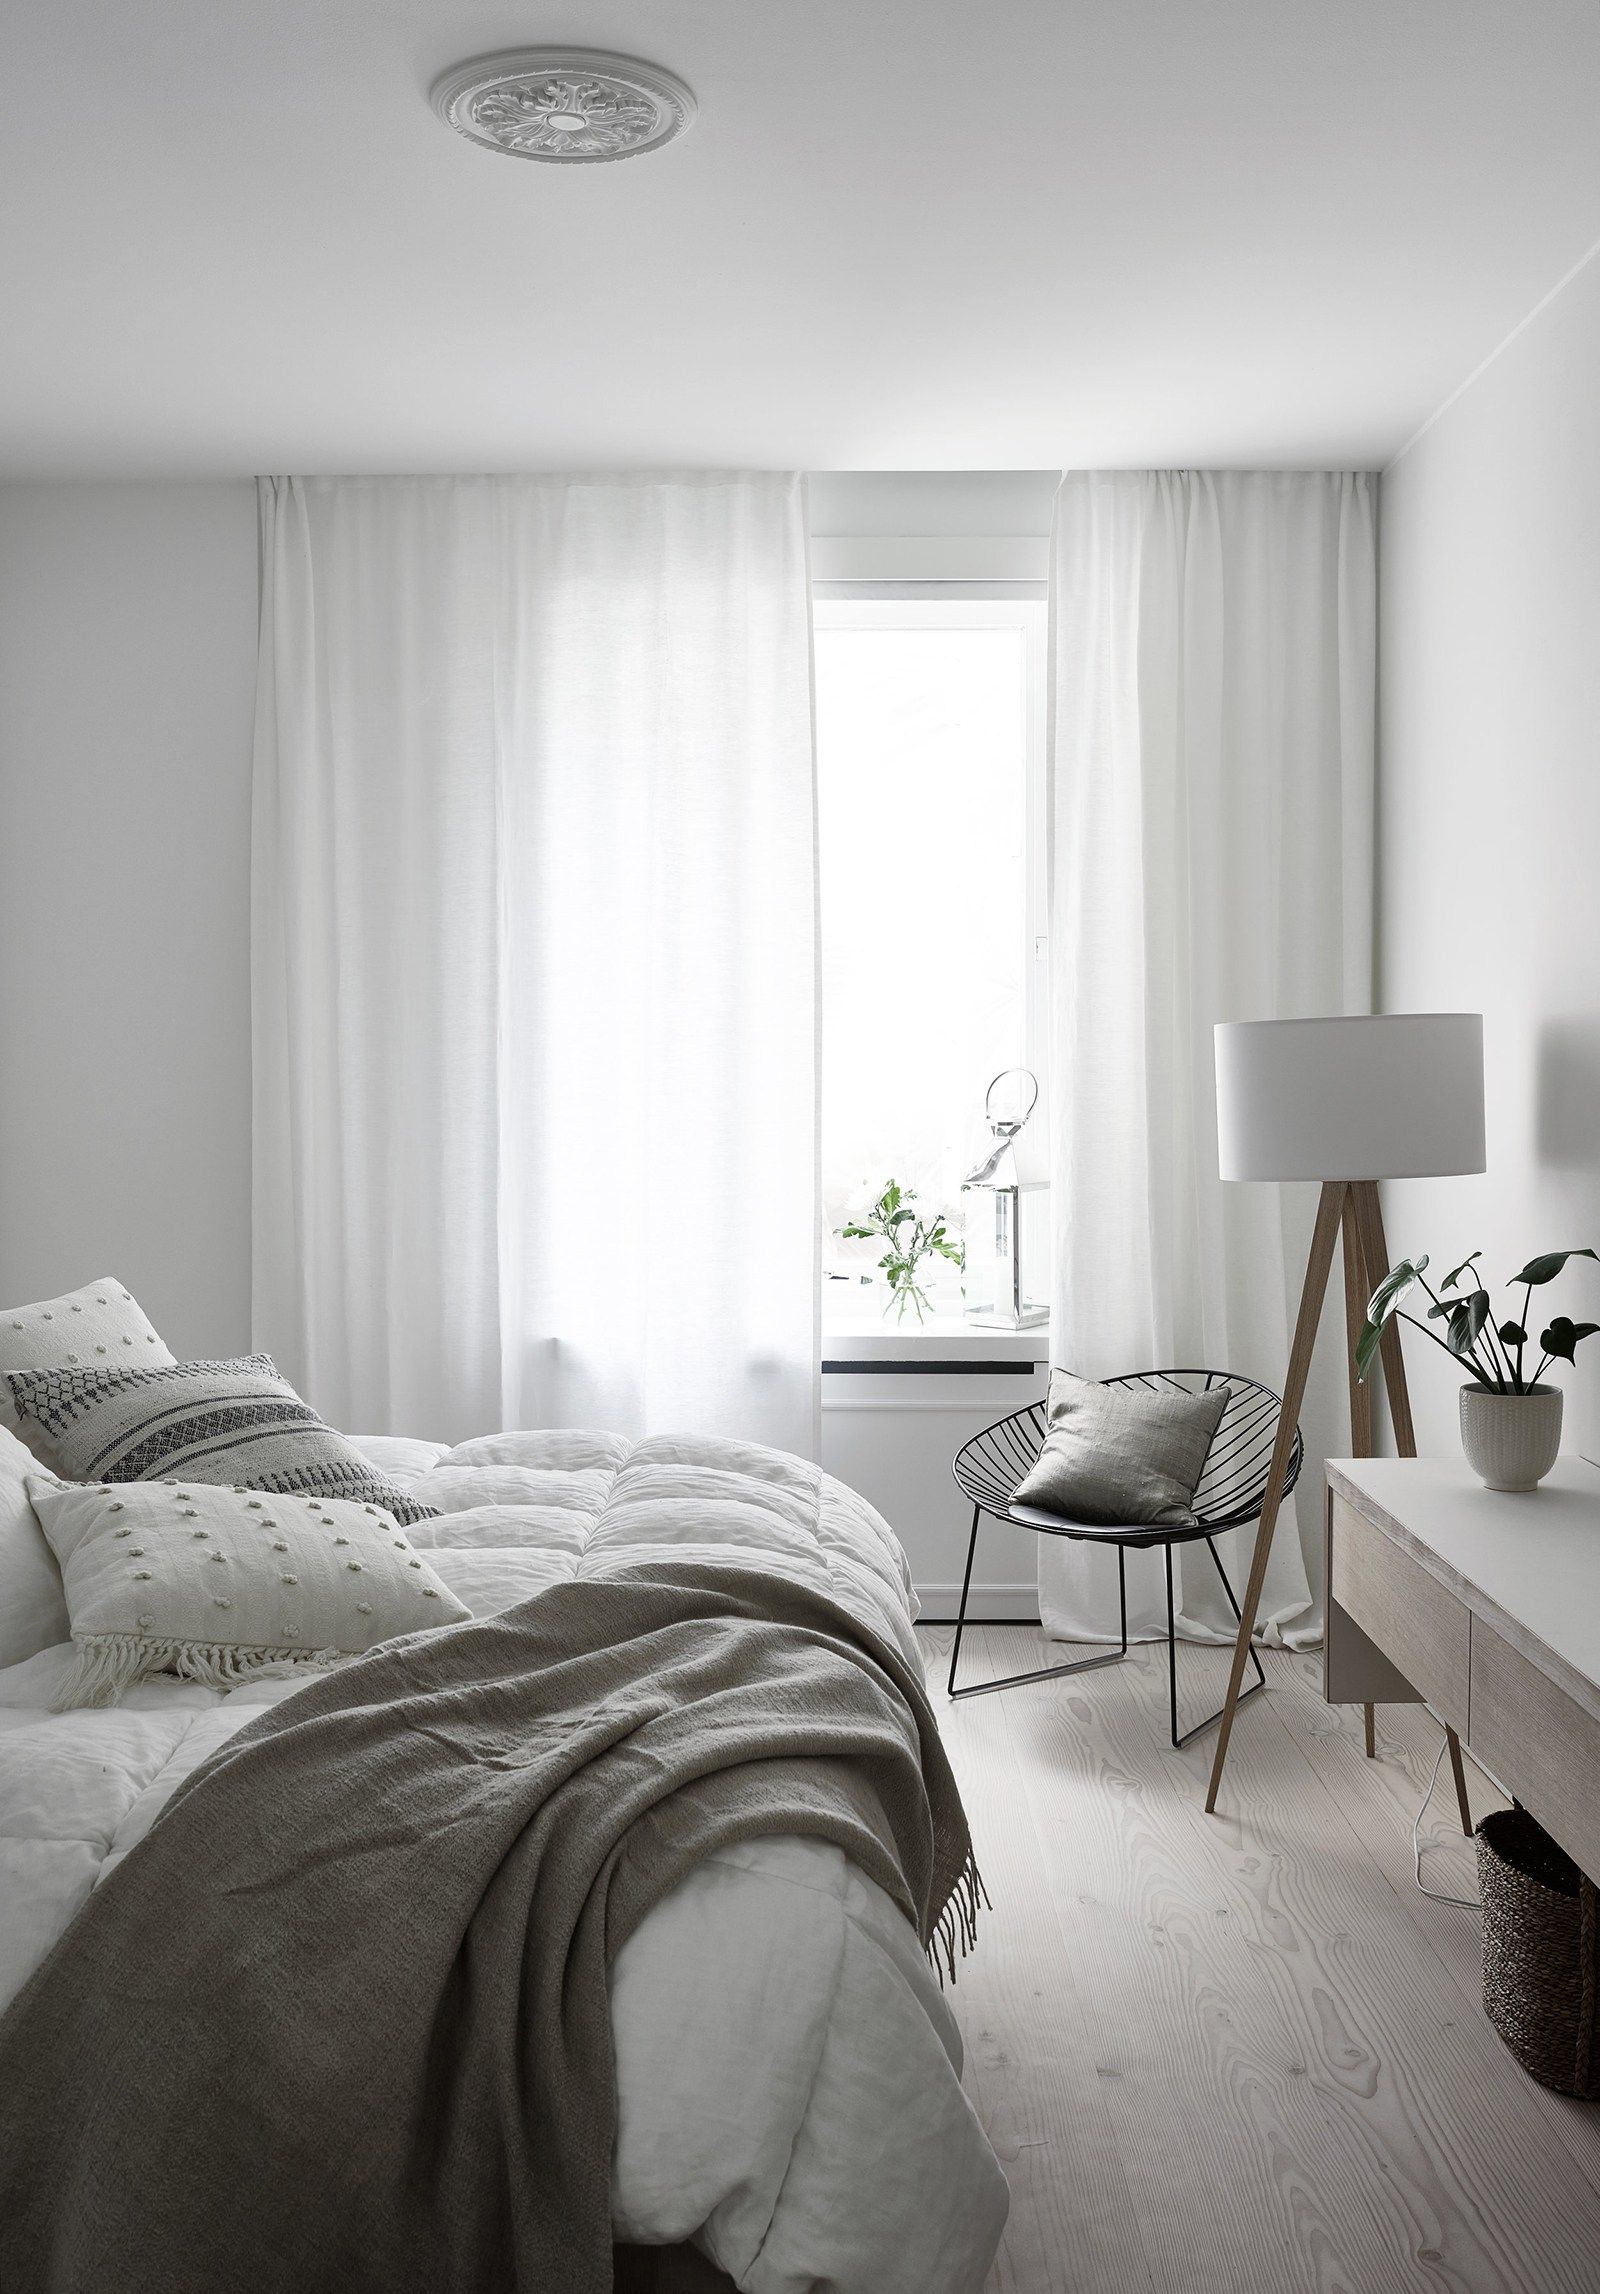 A bright white Finnish Home via Coco Lapine Design blog